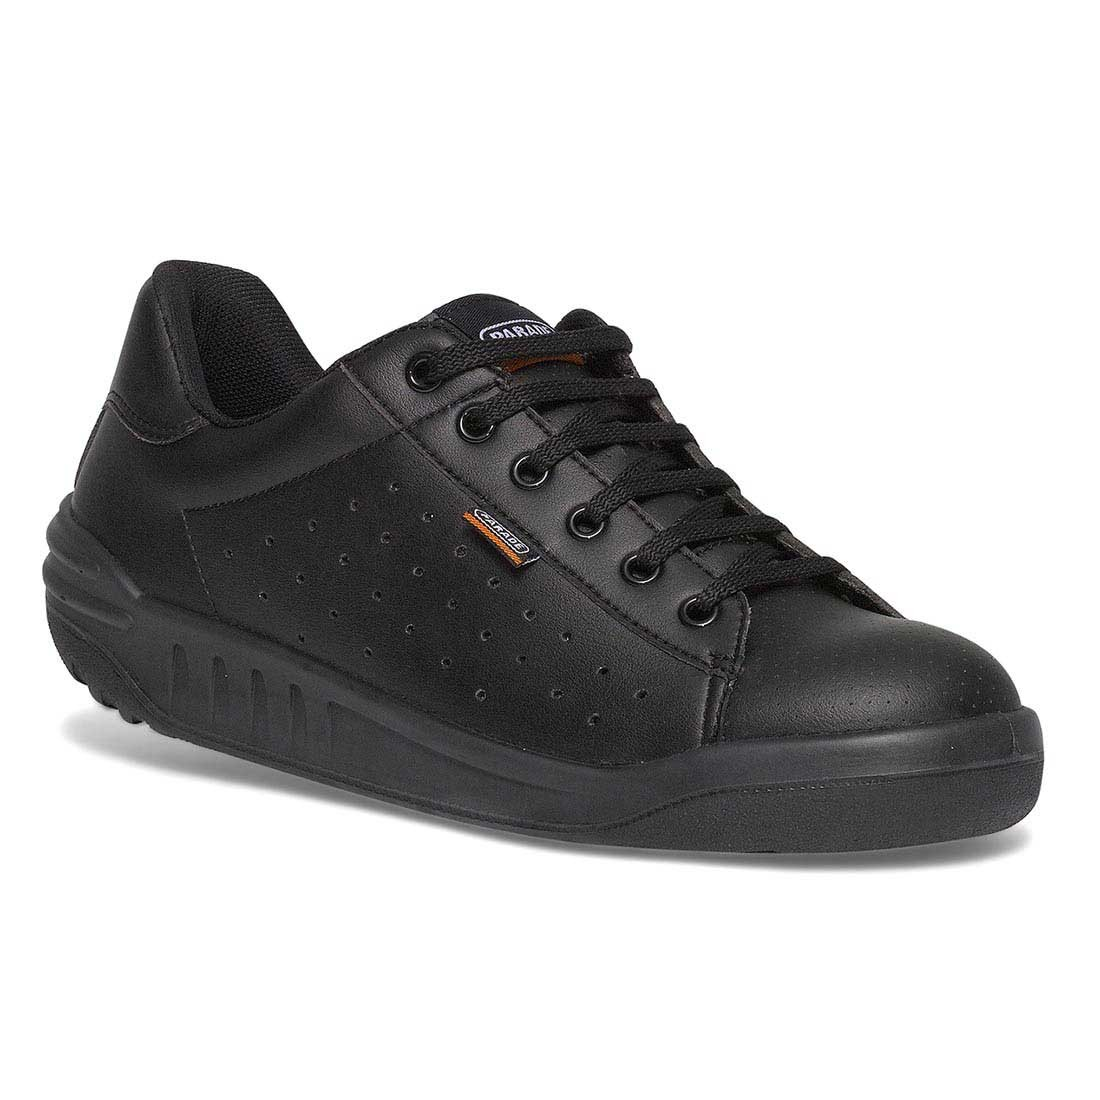 Parade Black Breathable Joppa Safety Trainer With Comfort